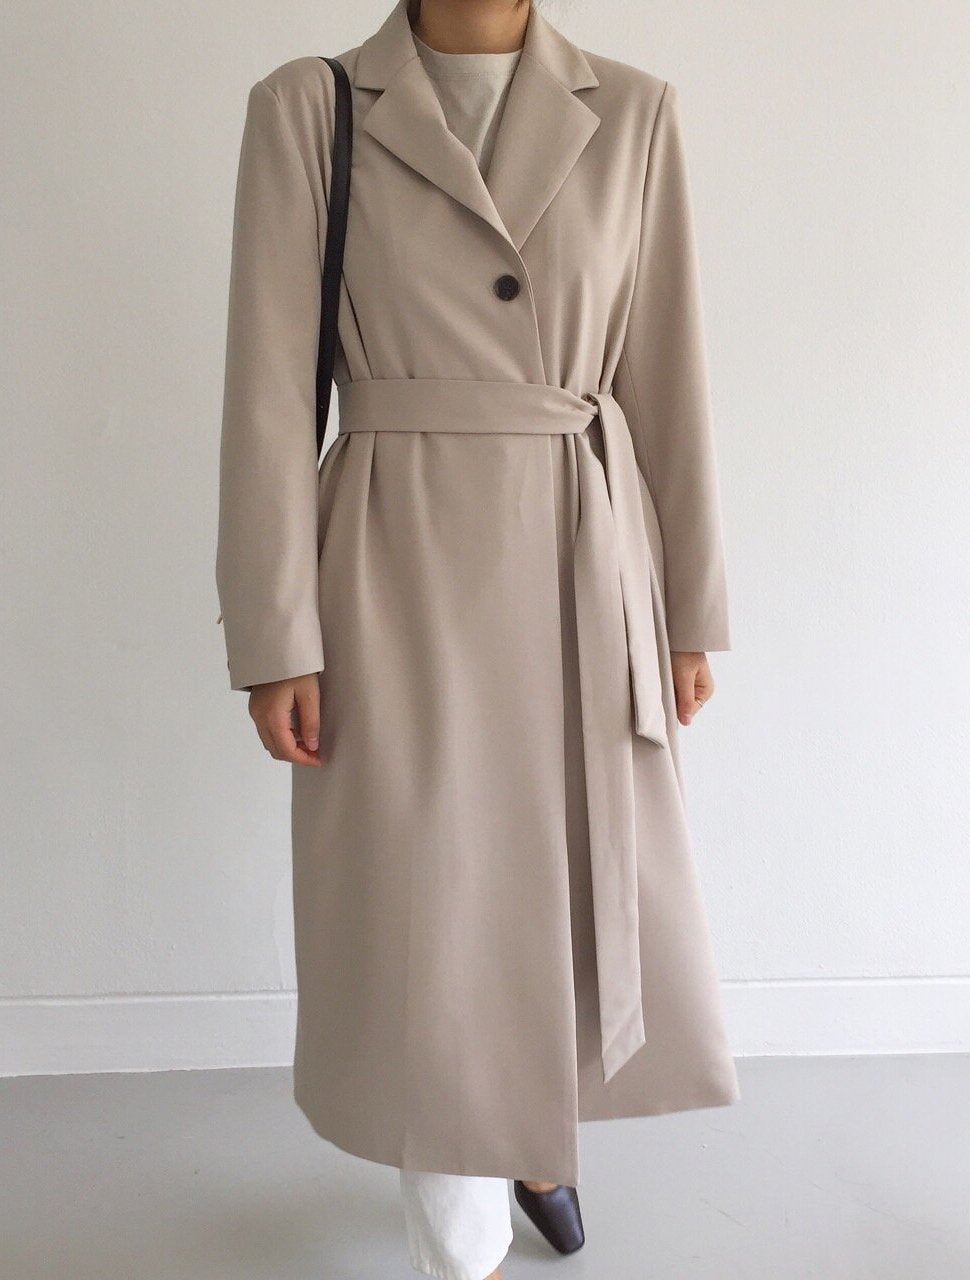 long spring jacket with belt - LOCOLIPS